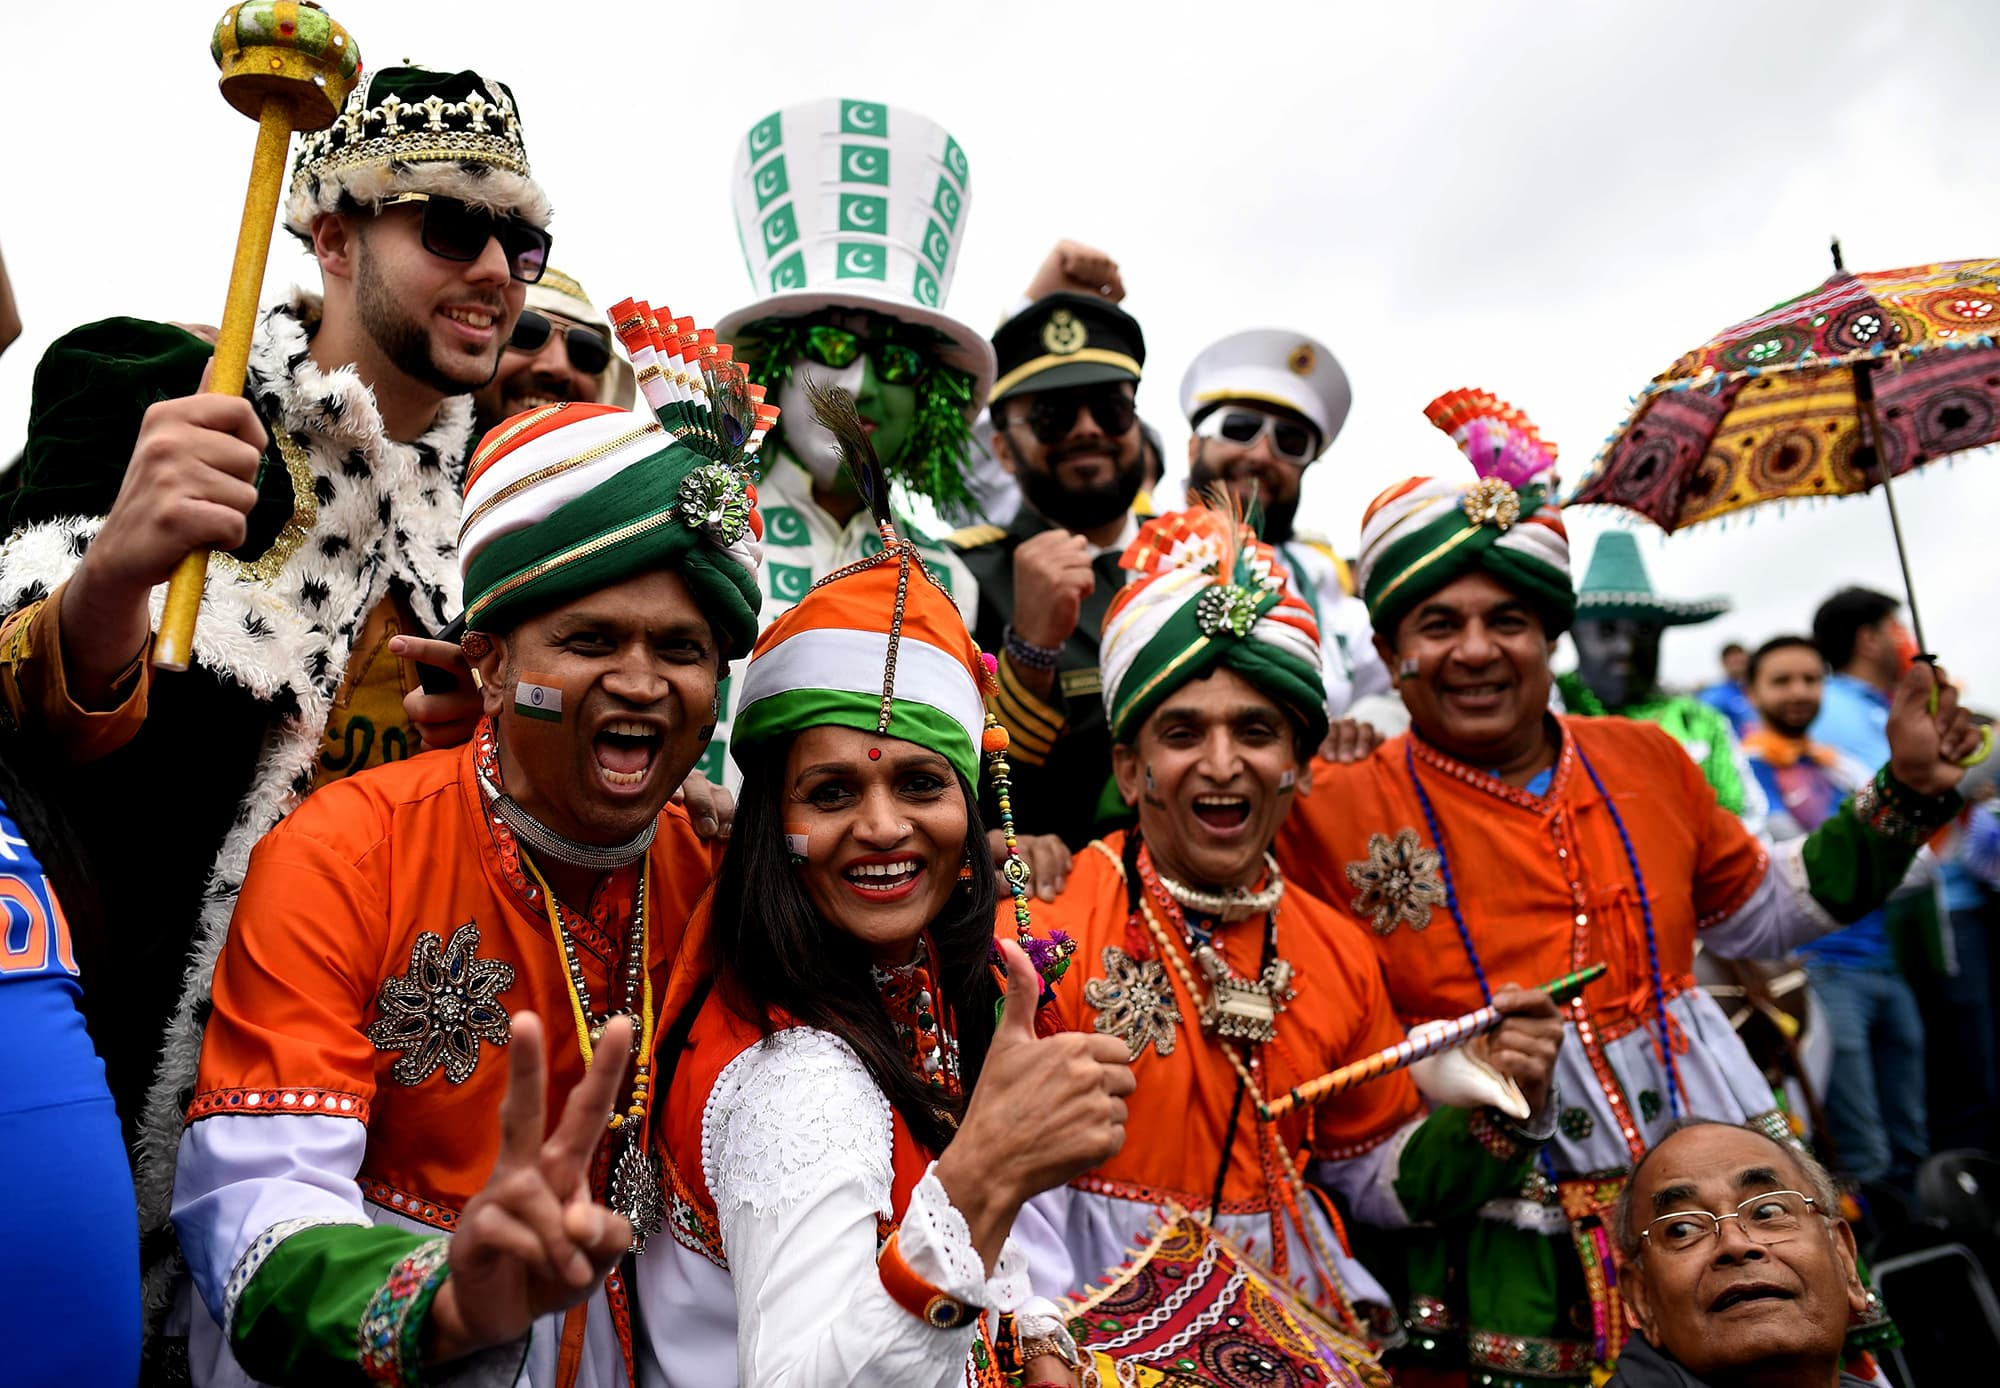 Indian fans in costume jump into the frame with Pakistani fans in costume. ─ AFP